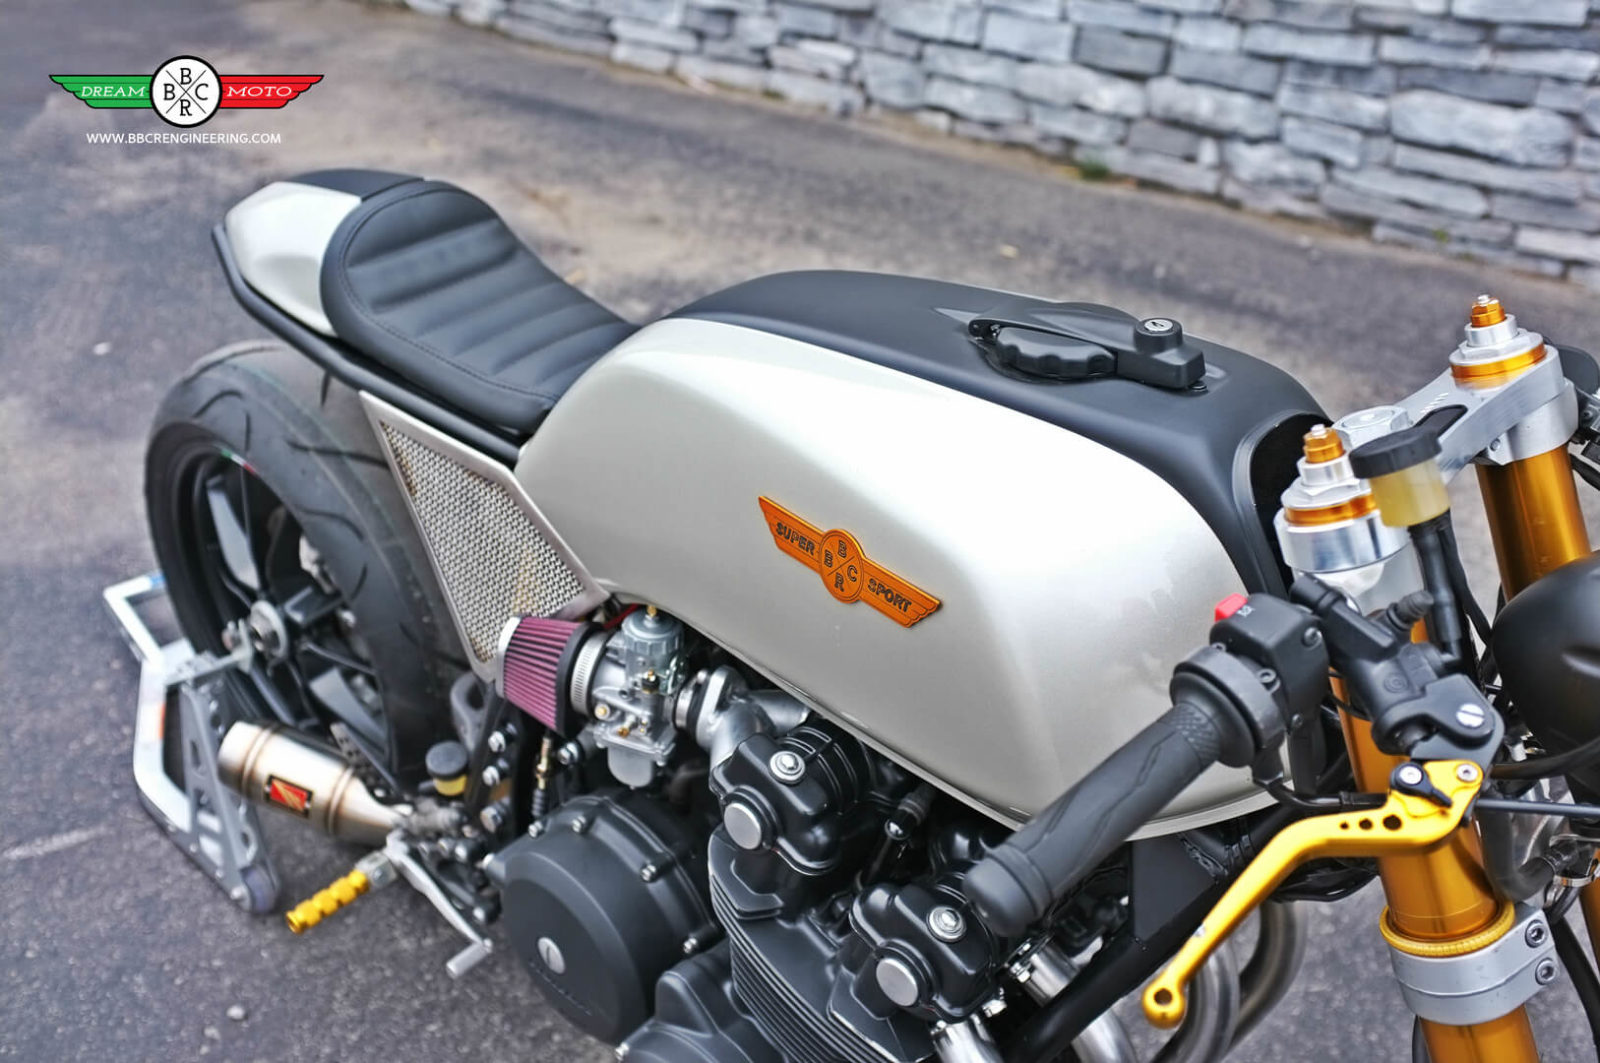 How Much Is A Paint Job >> Honda CB750 Café Racer by BBCR Engineering